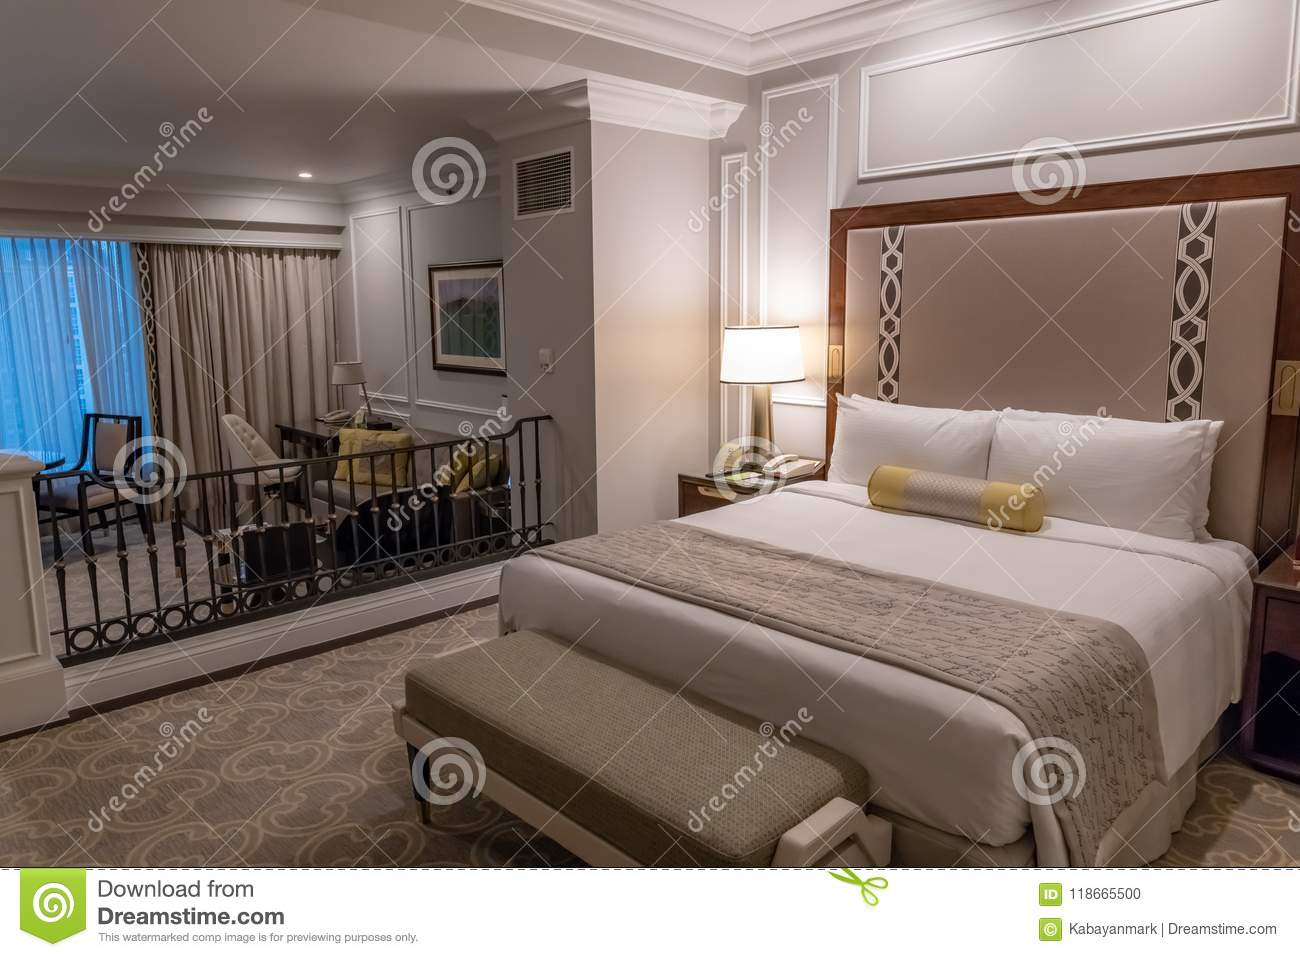 Macau venetian indoors interior design studio standard bedroom suite decoration travel mo people